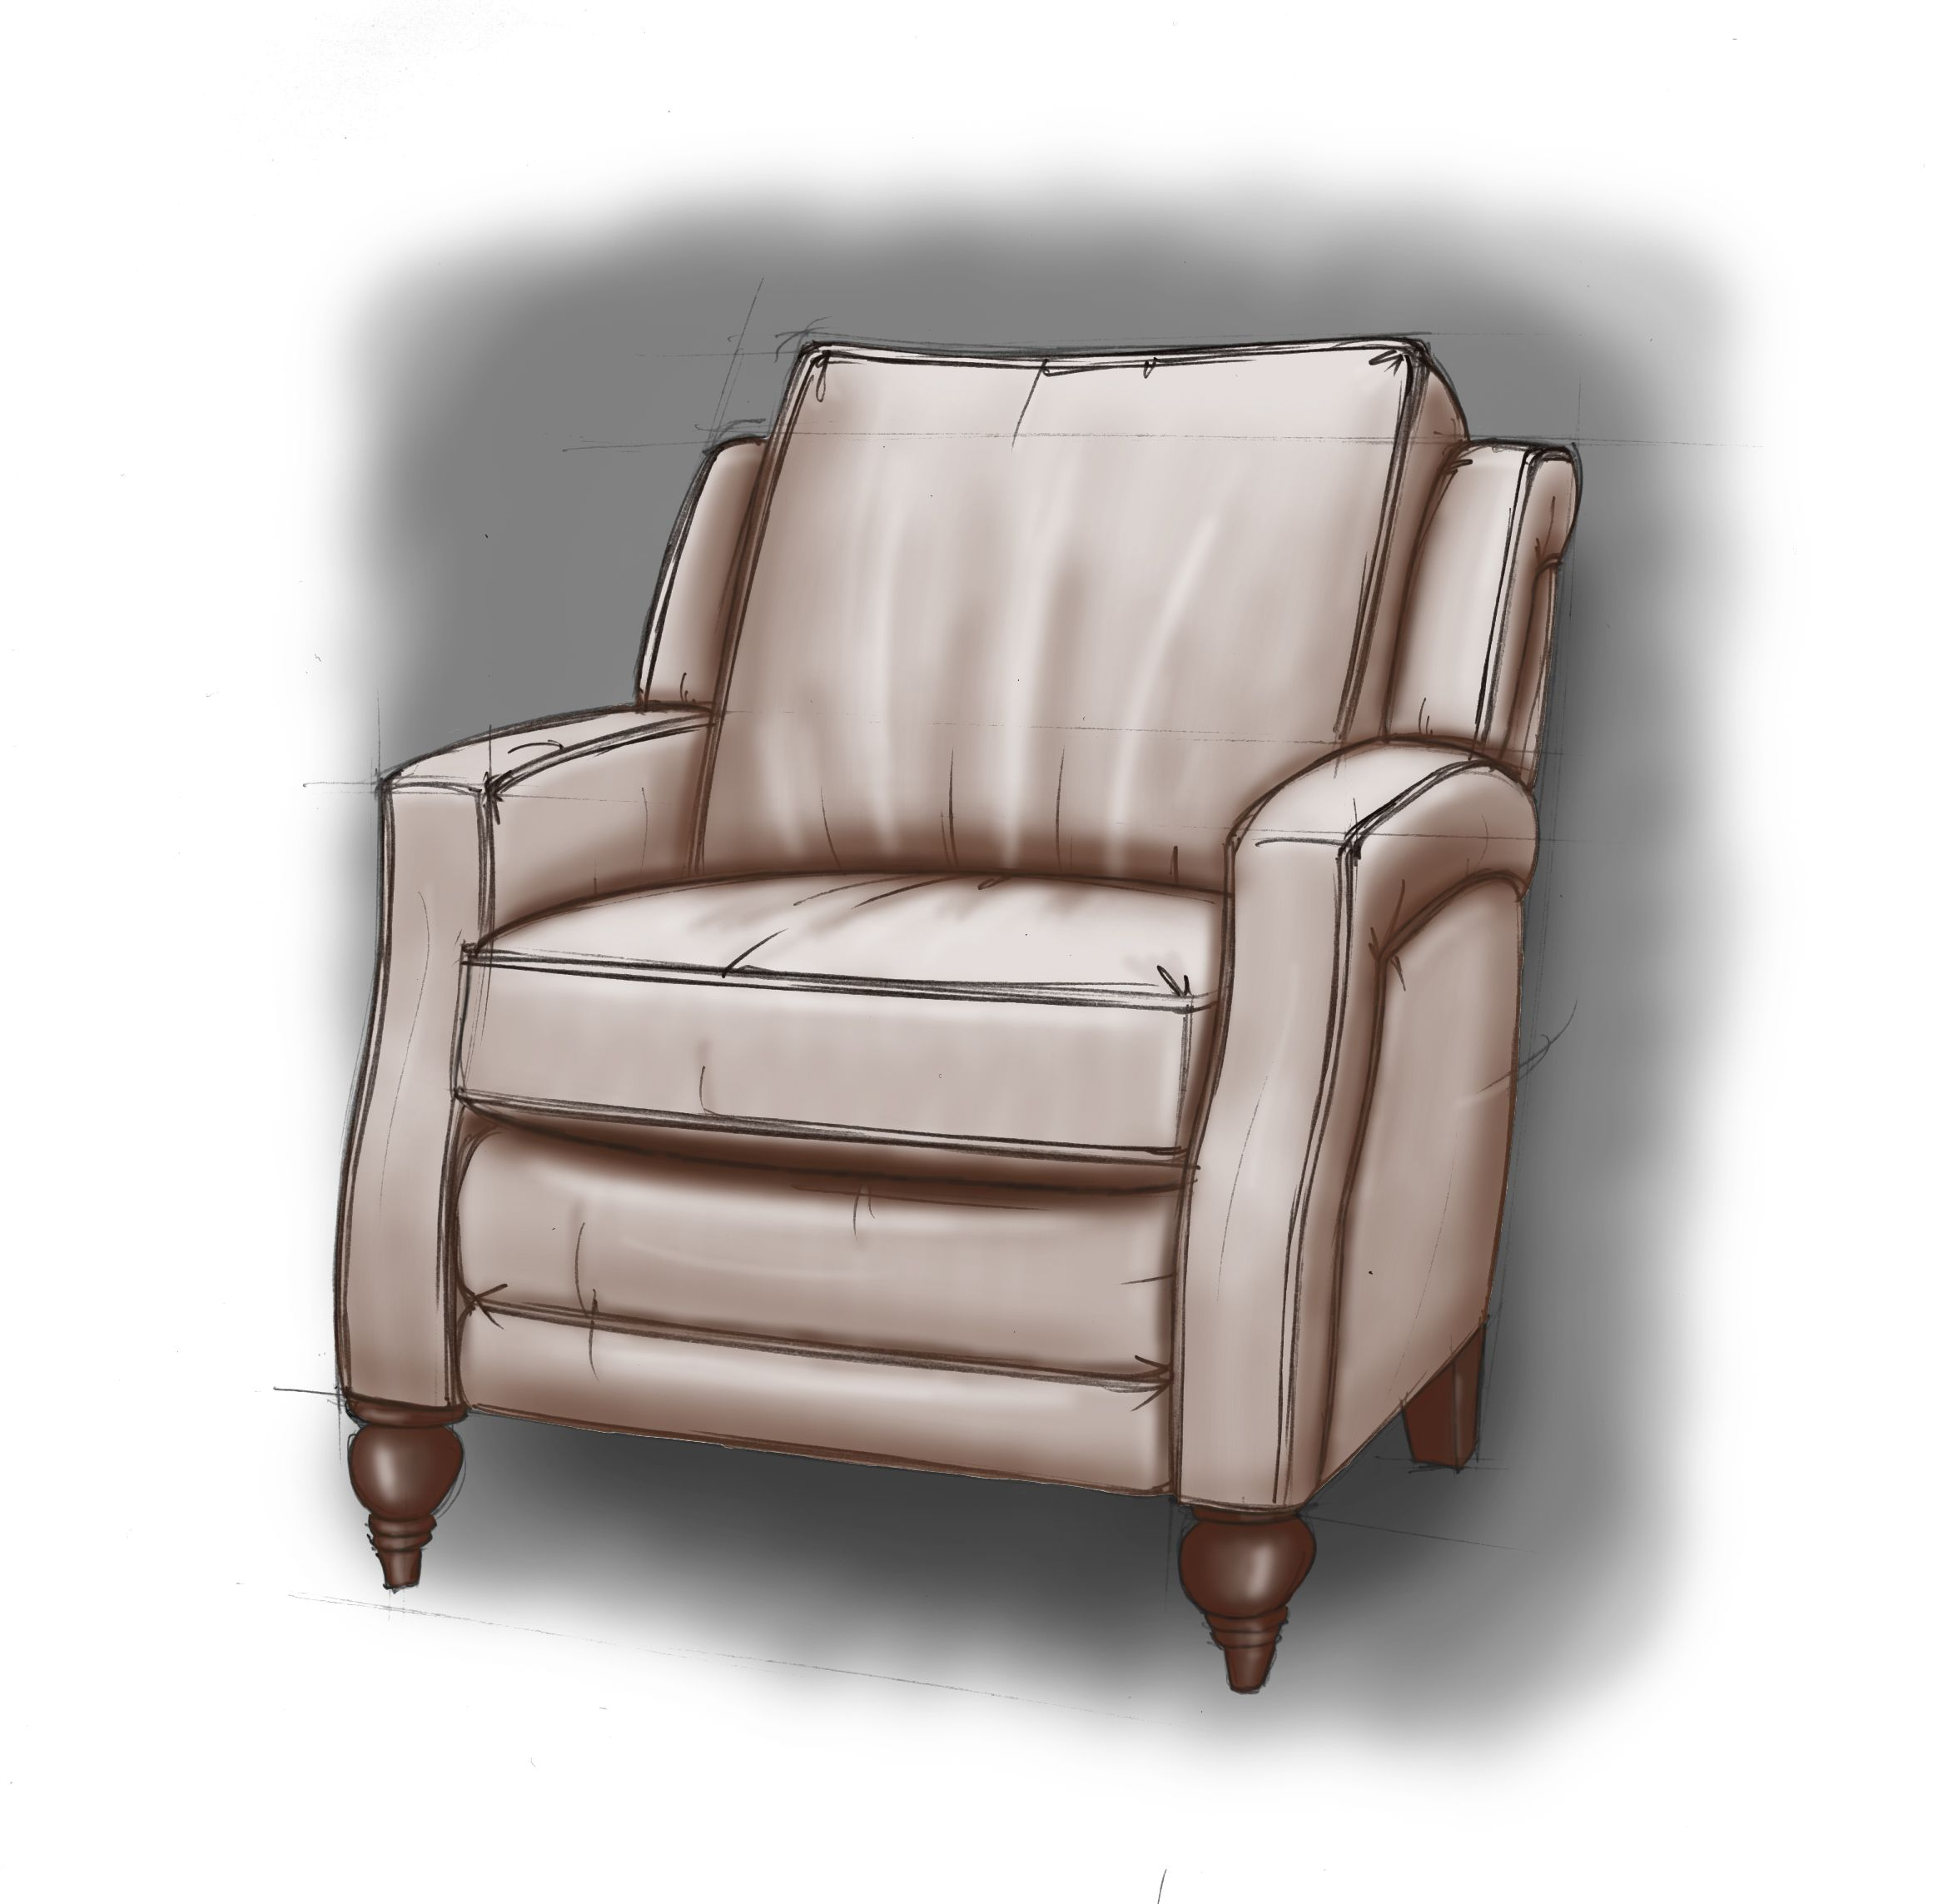 Dane Is A Wing Back Type Reclining Chair But With The Transitional Twist Of A Track Style Arm Reclining Sofa Rocker Recliners Recliner Chair